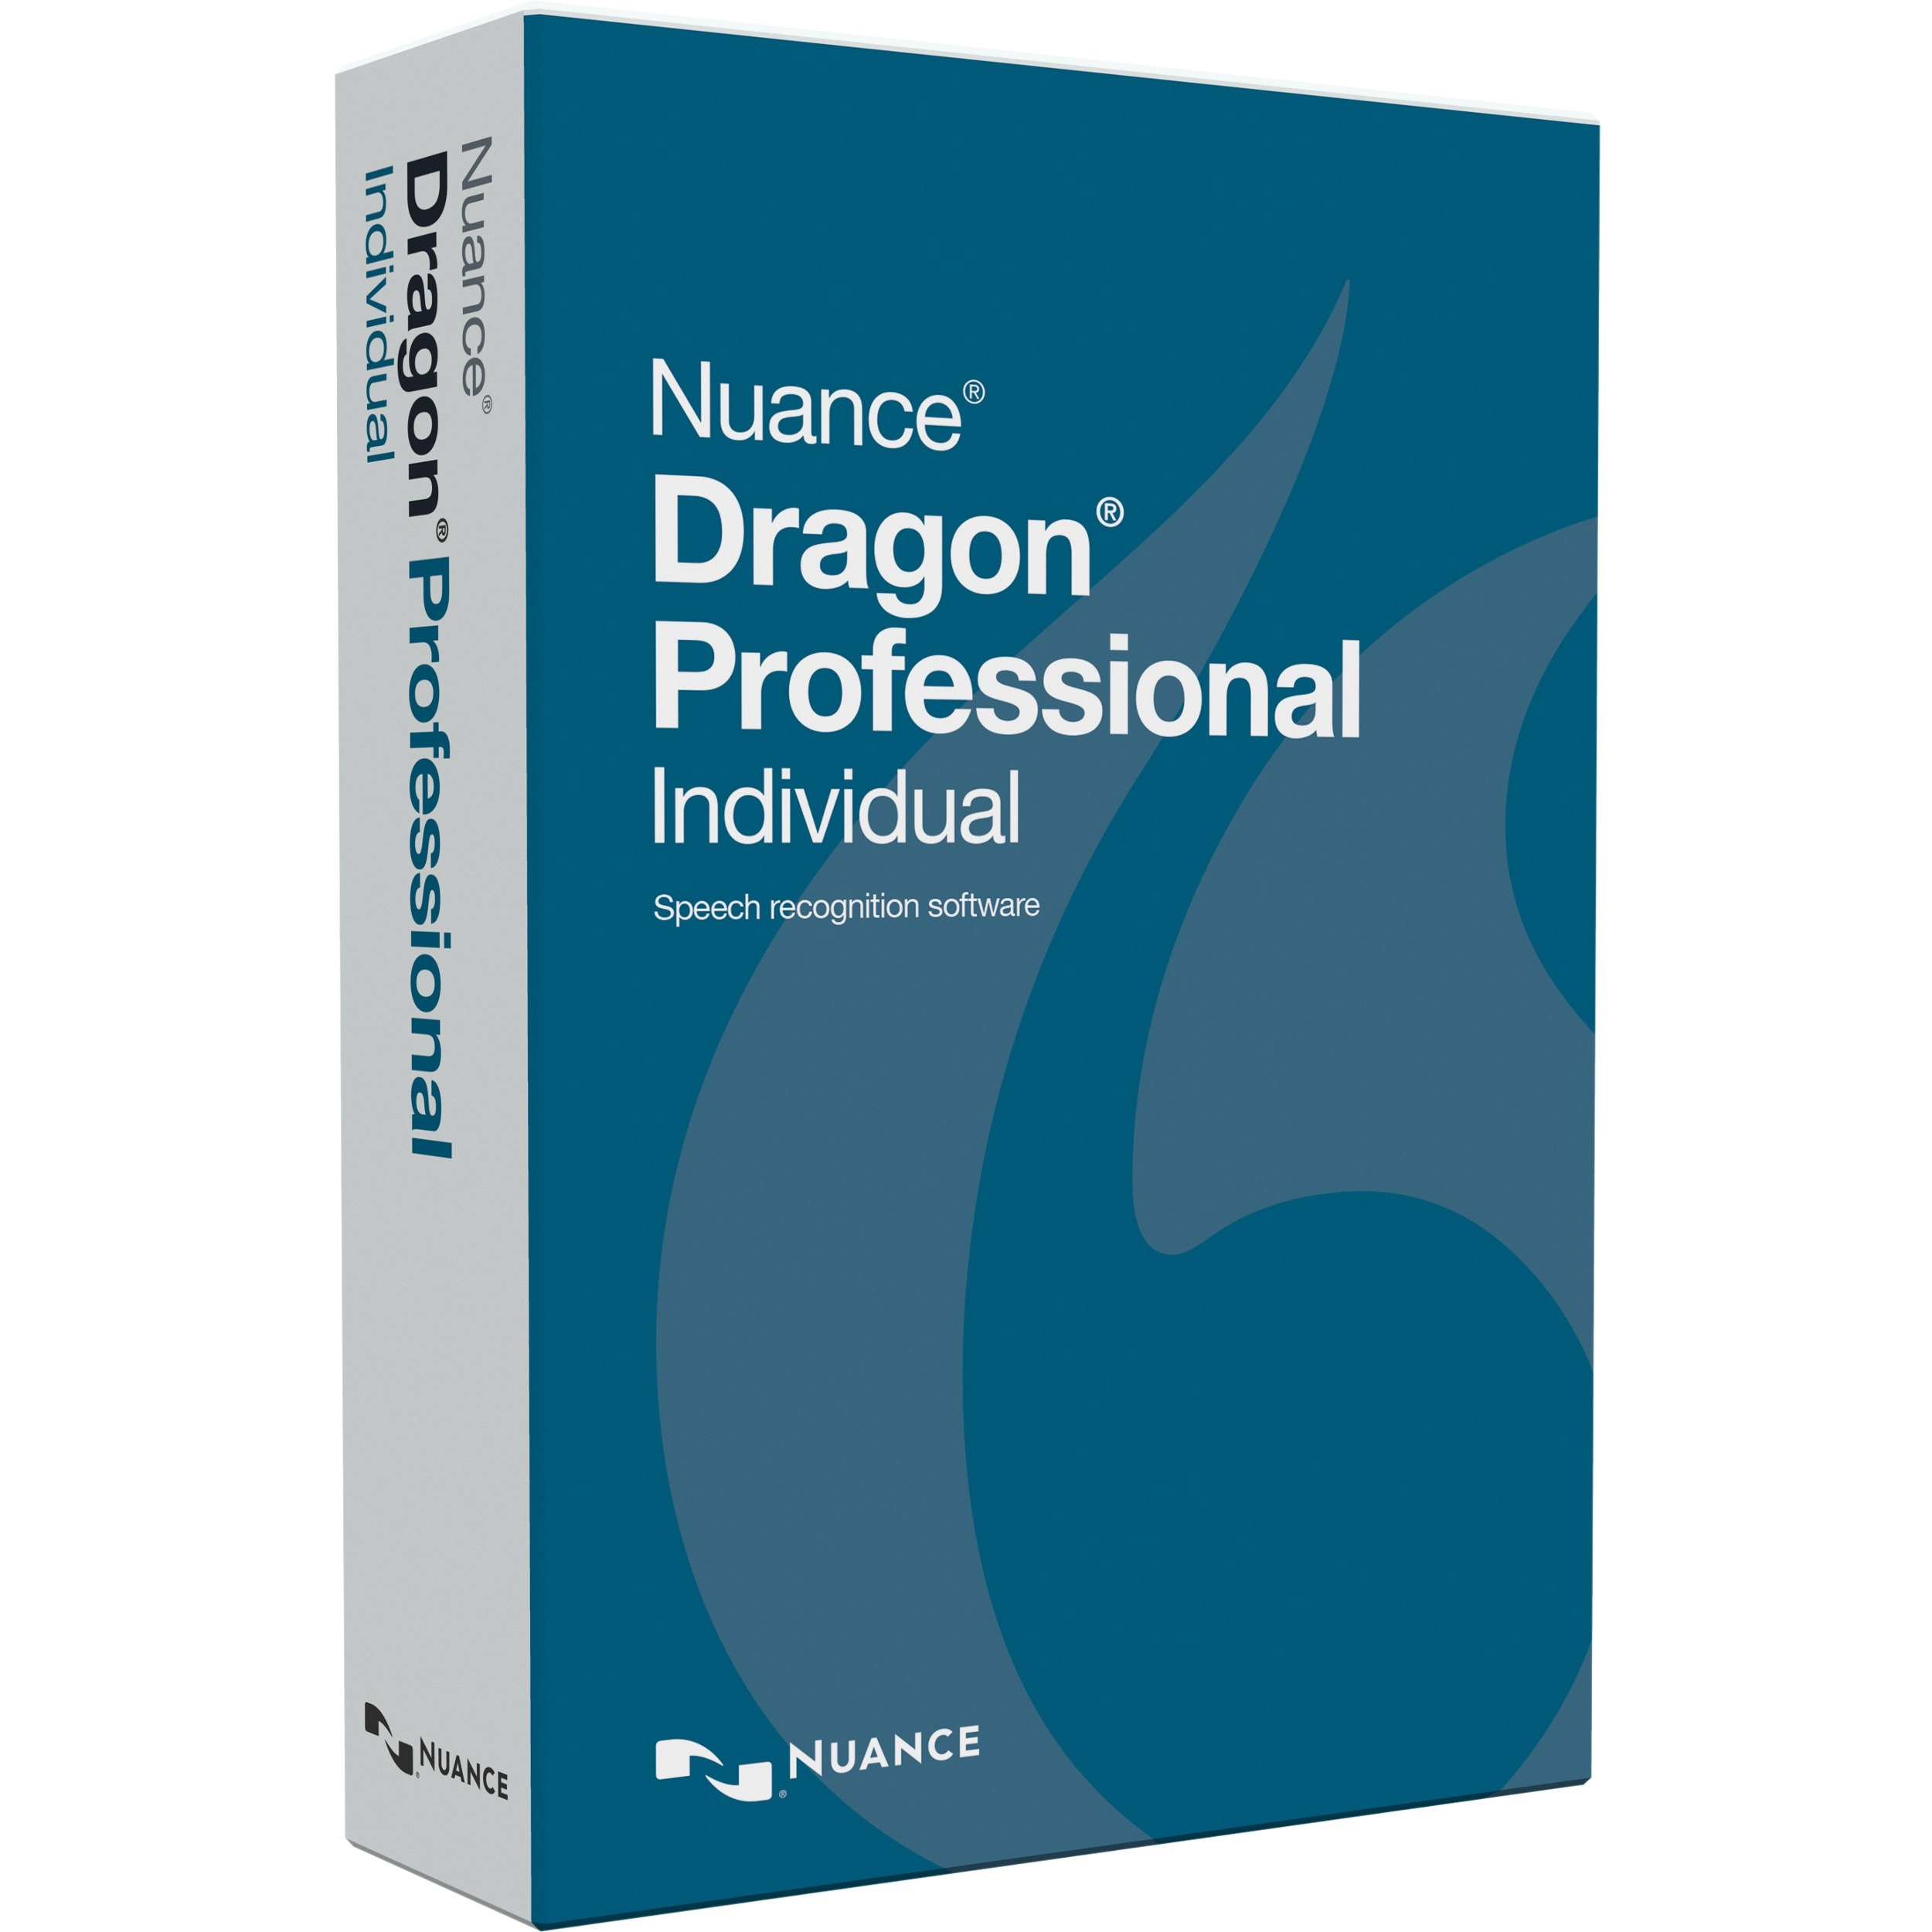 Nuance Dragon v.14.0 Professional Individual - Box Pack - 1 User K809A-G00-14.0